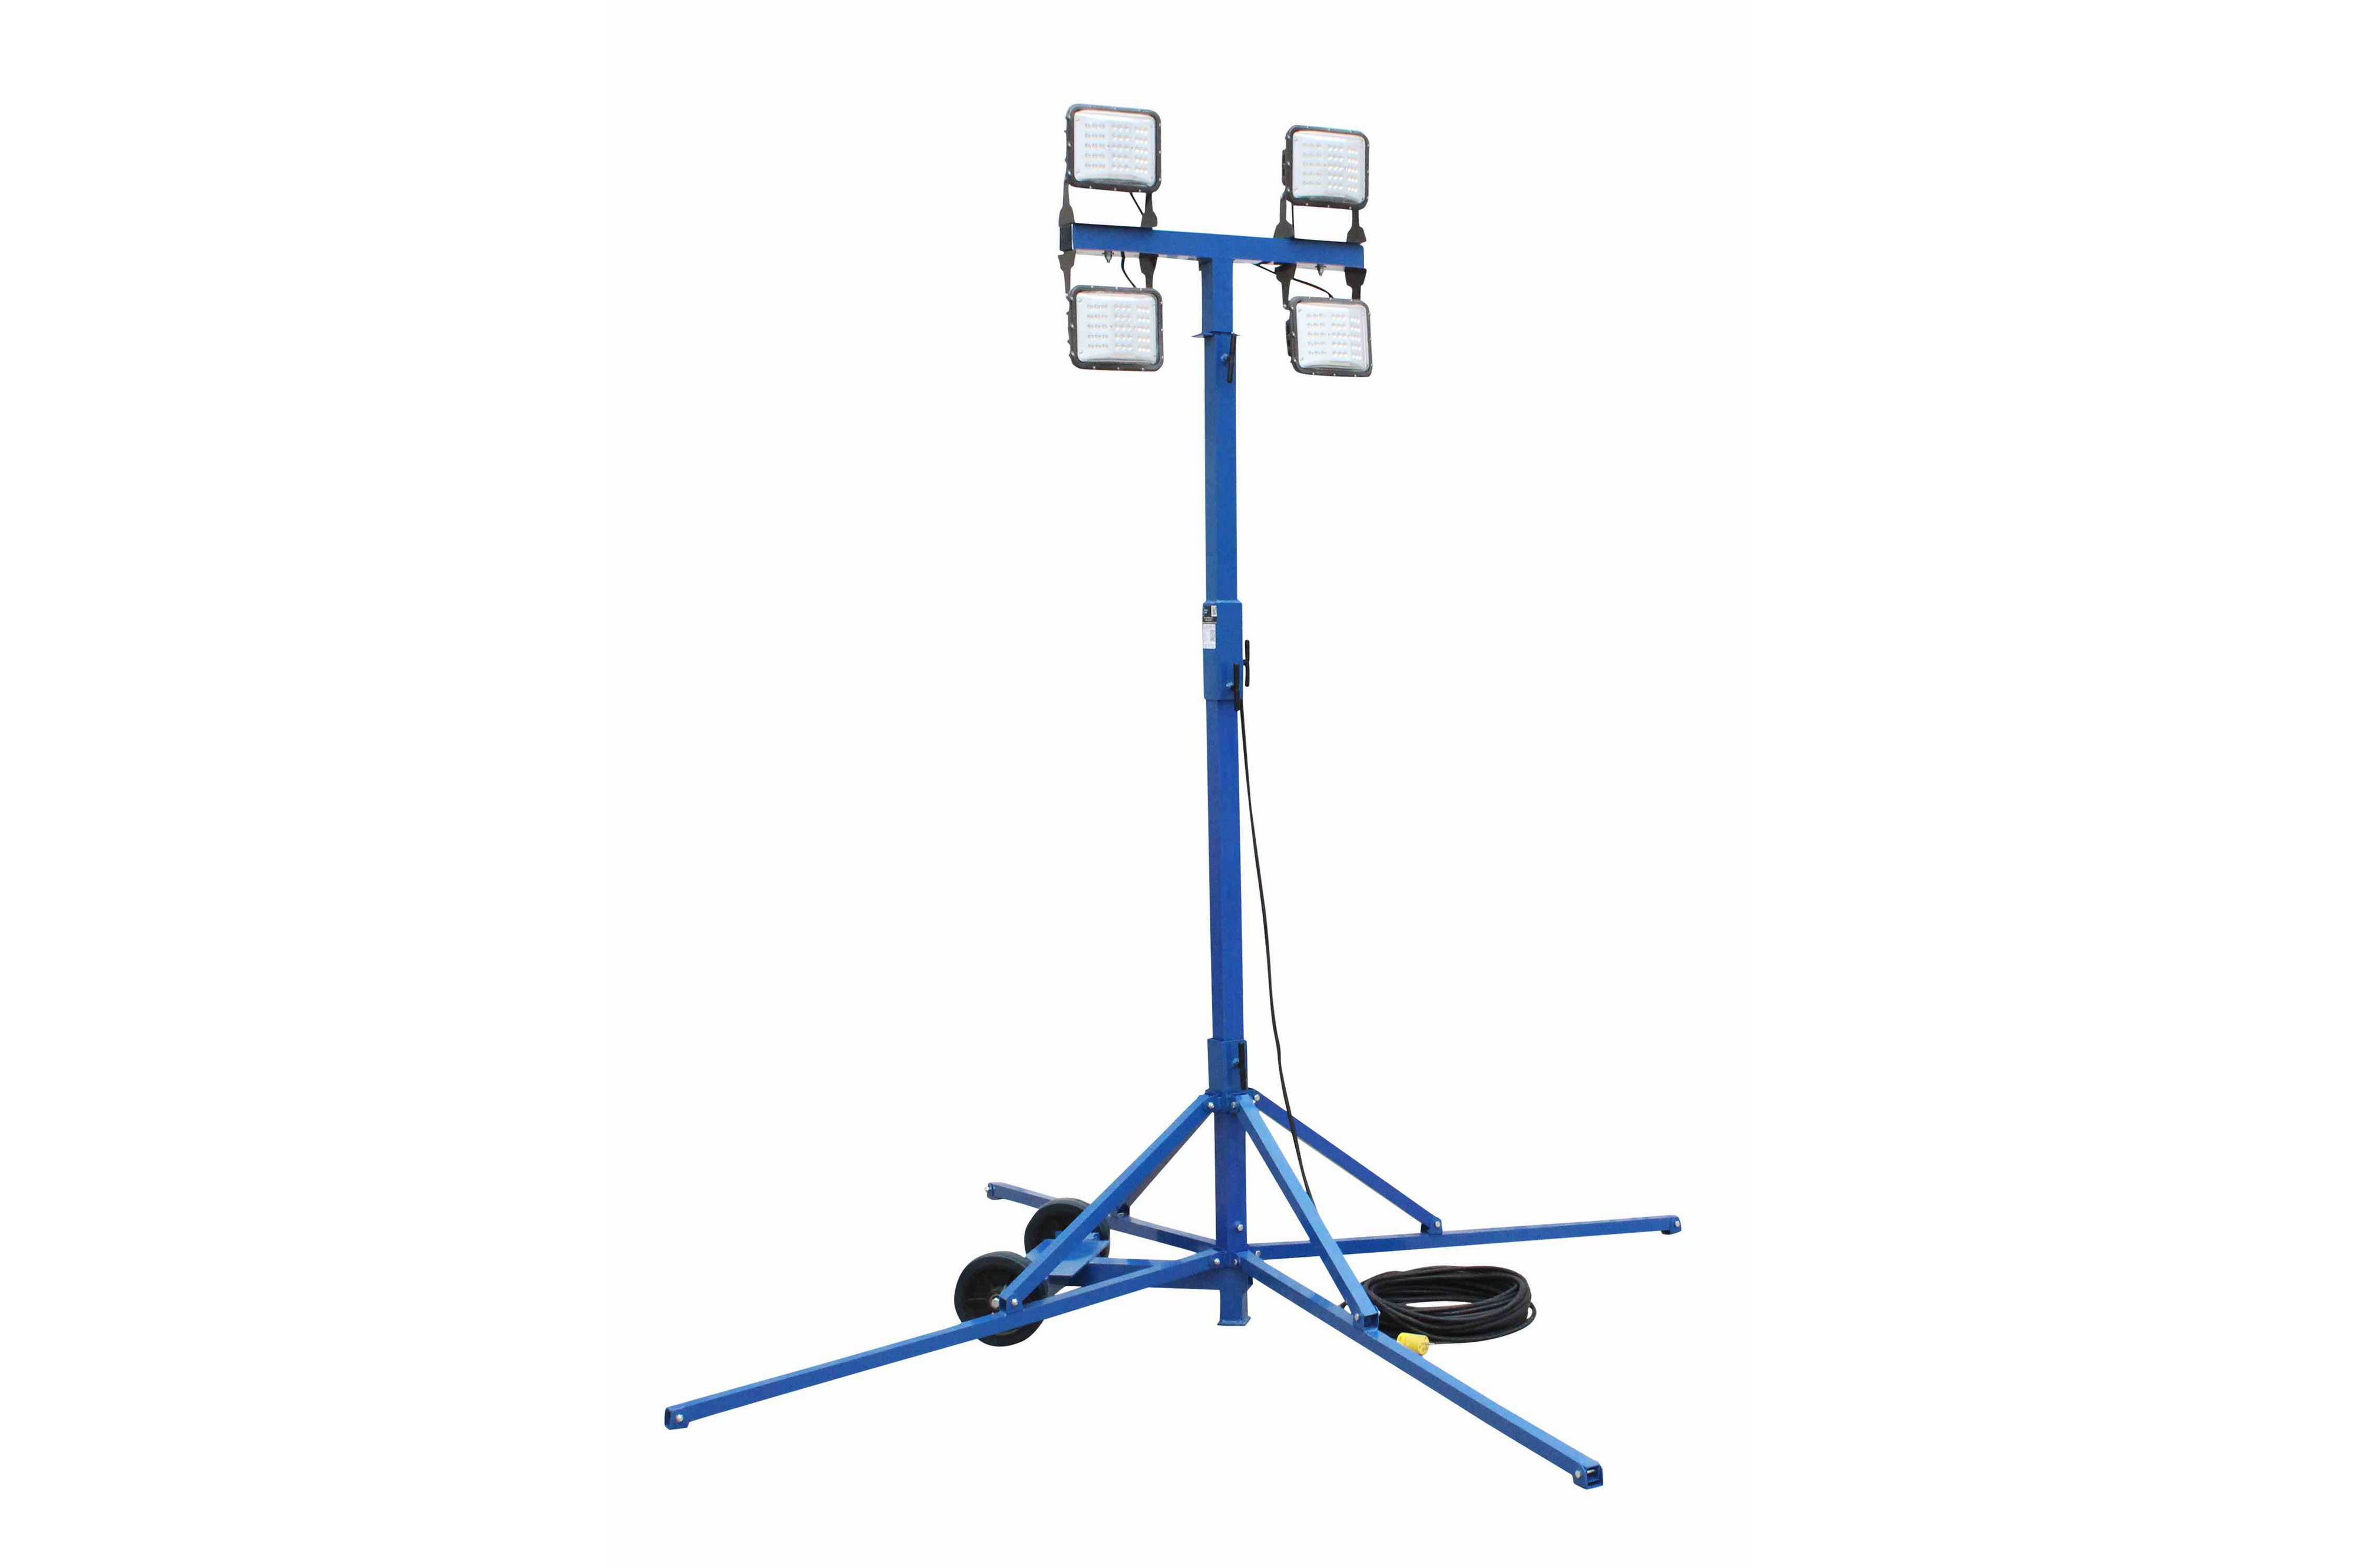 240 Watt Led Work Area Quadpod Light Fixture